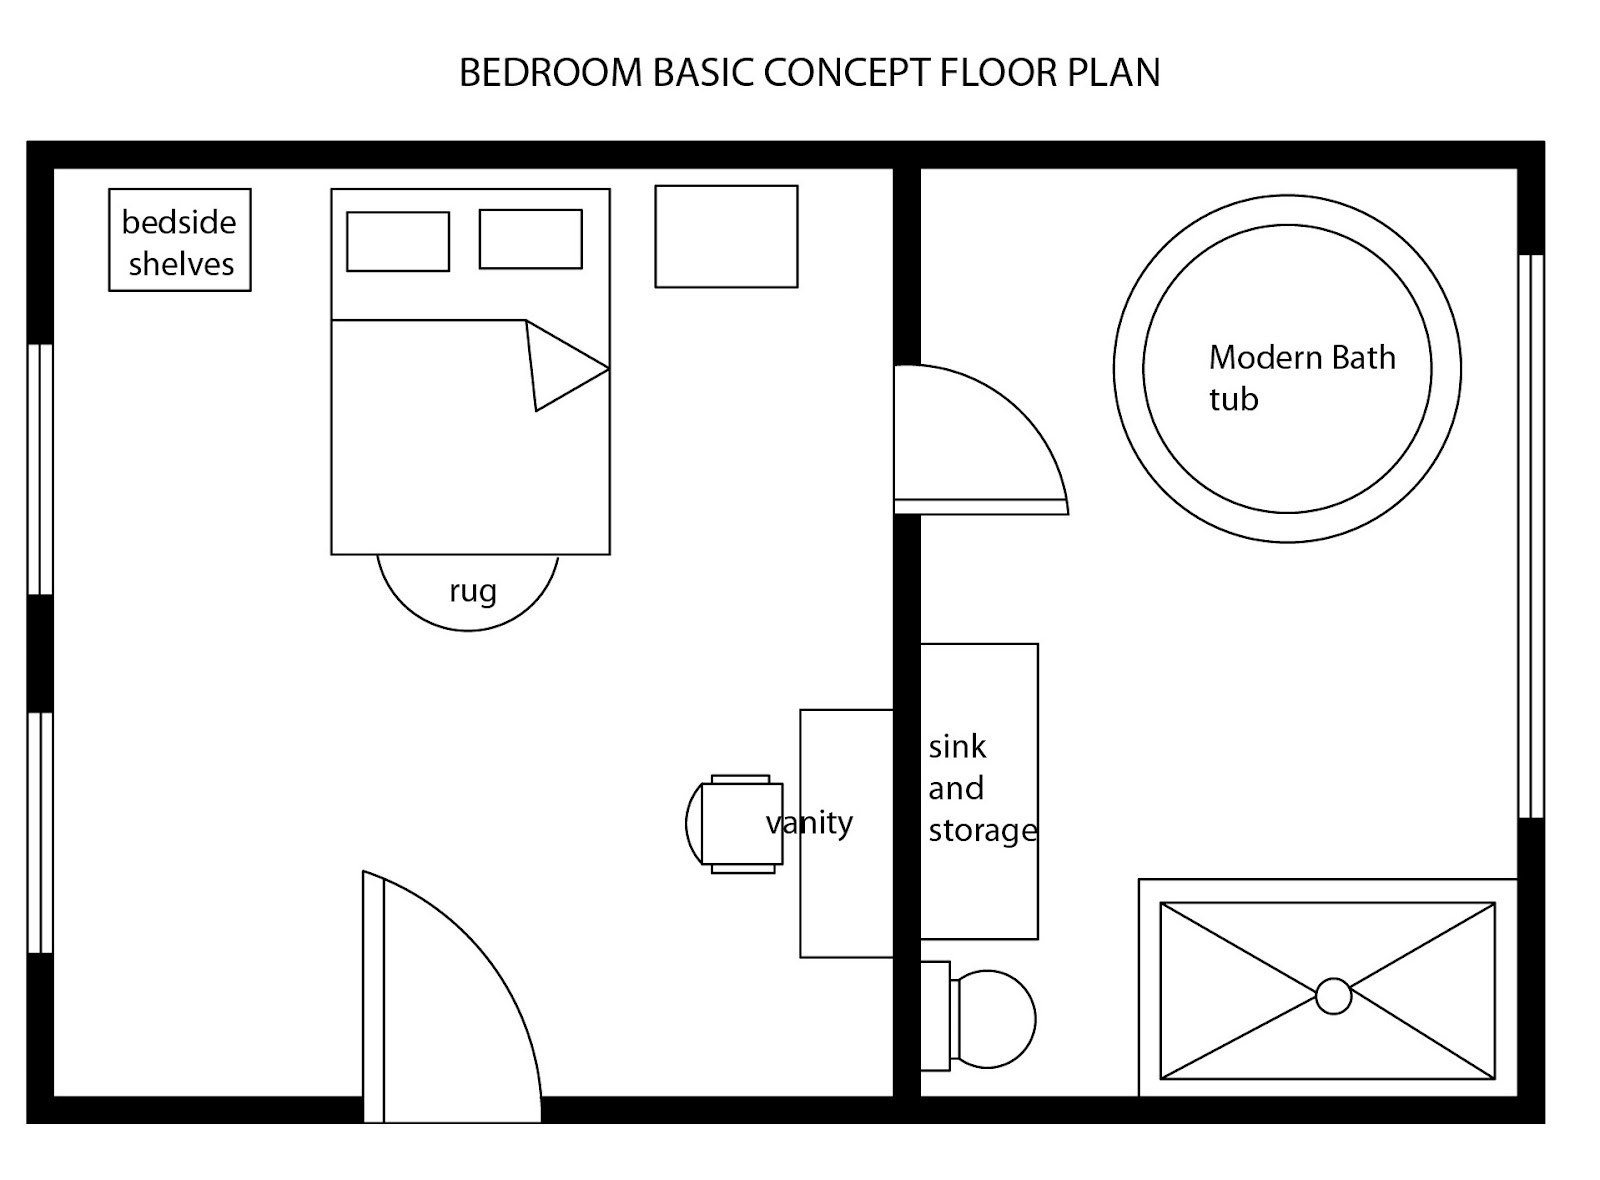 Interior design decor modern bedroom basic floor plan for Bedroom planner online free